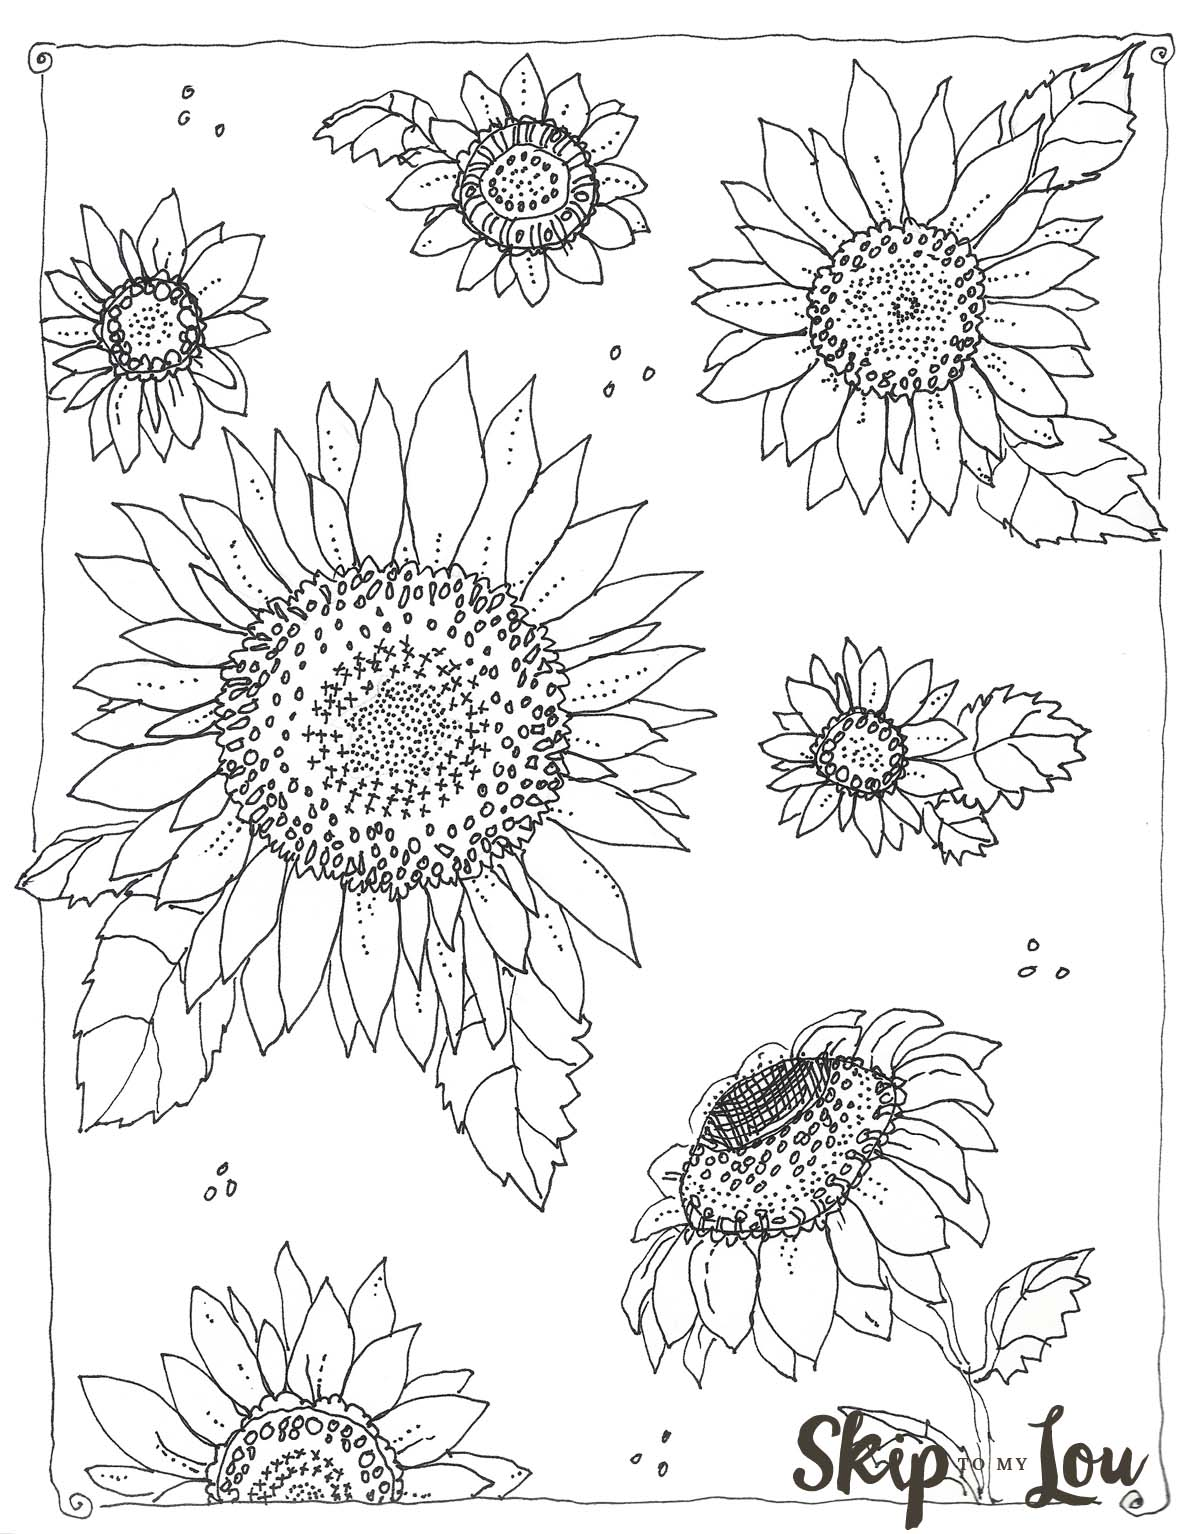 1200x1534 Kansas Day Sunflower Coloring Page Skip To My Lou